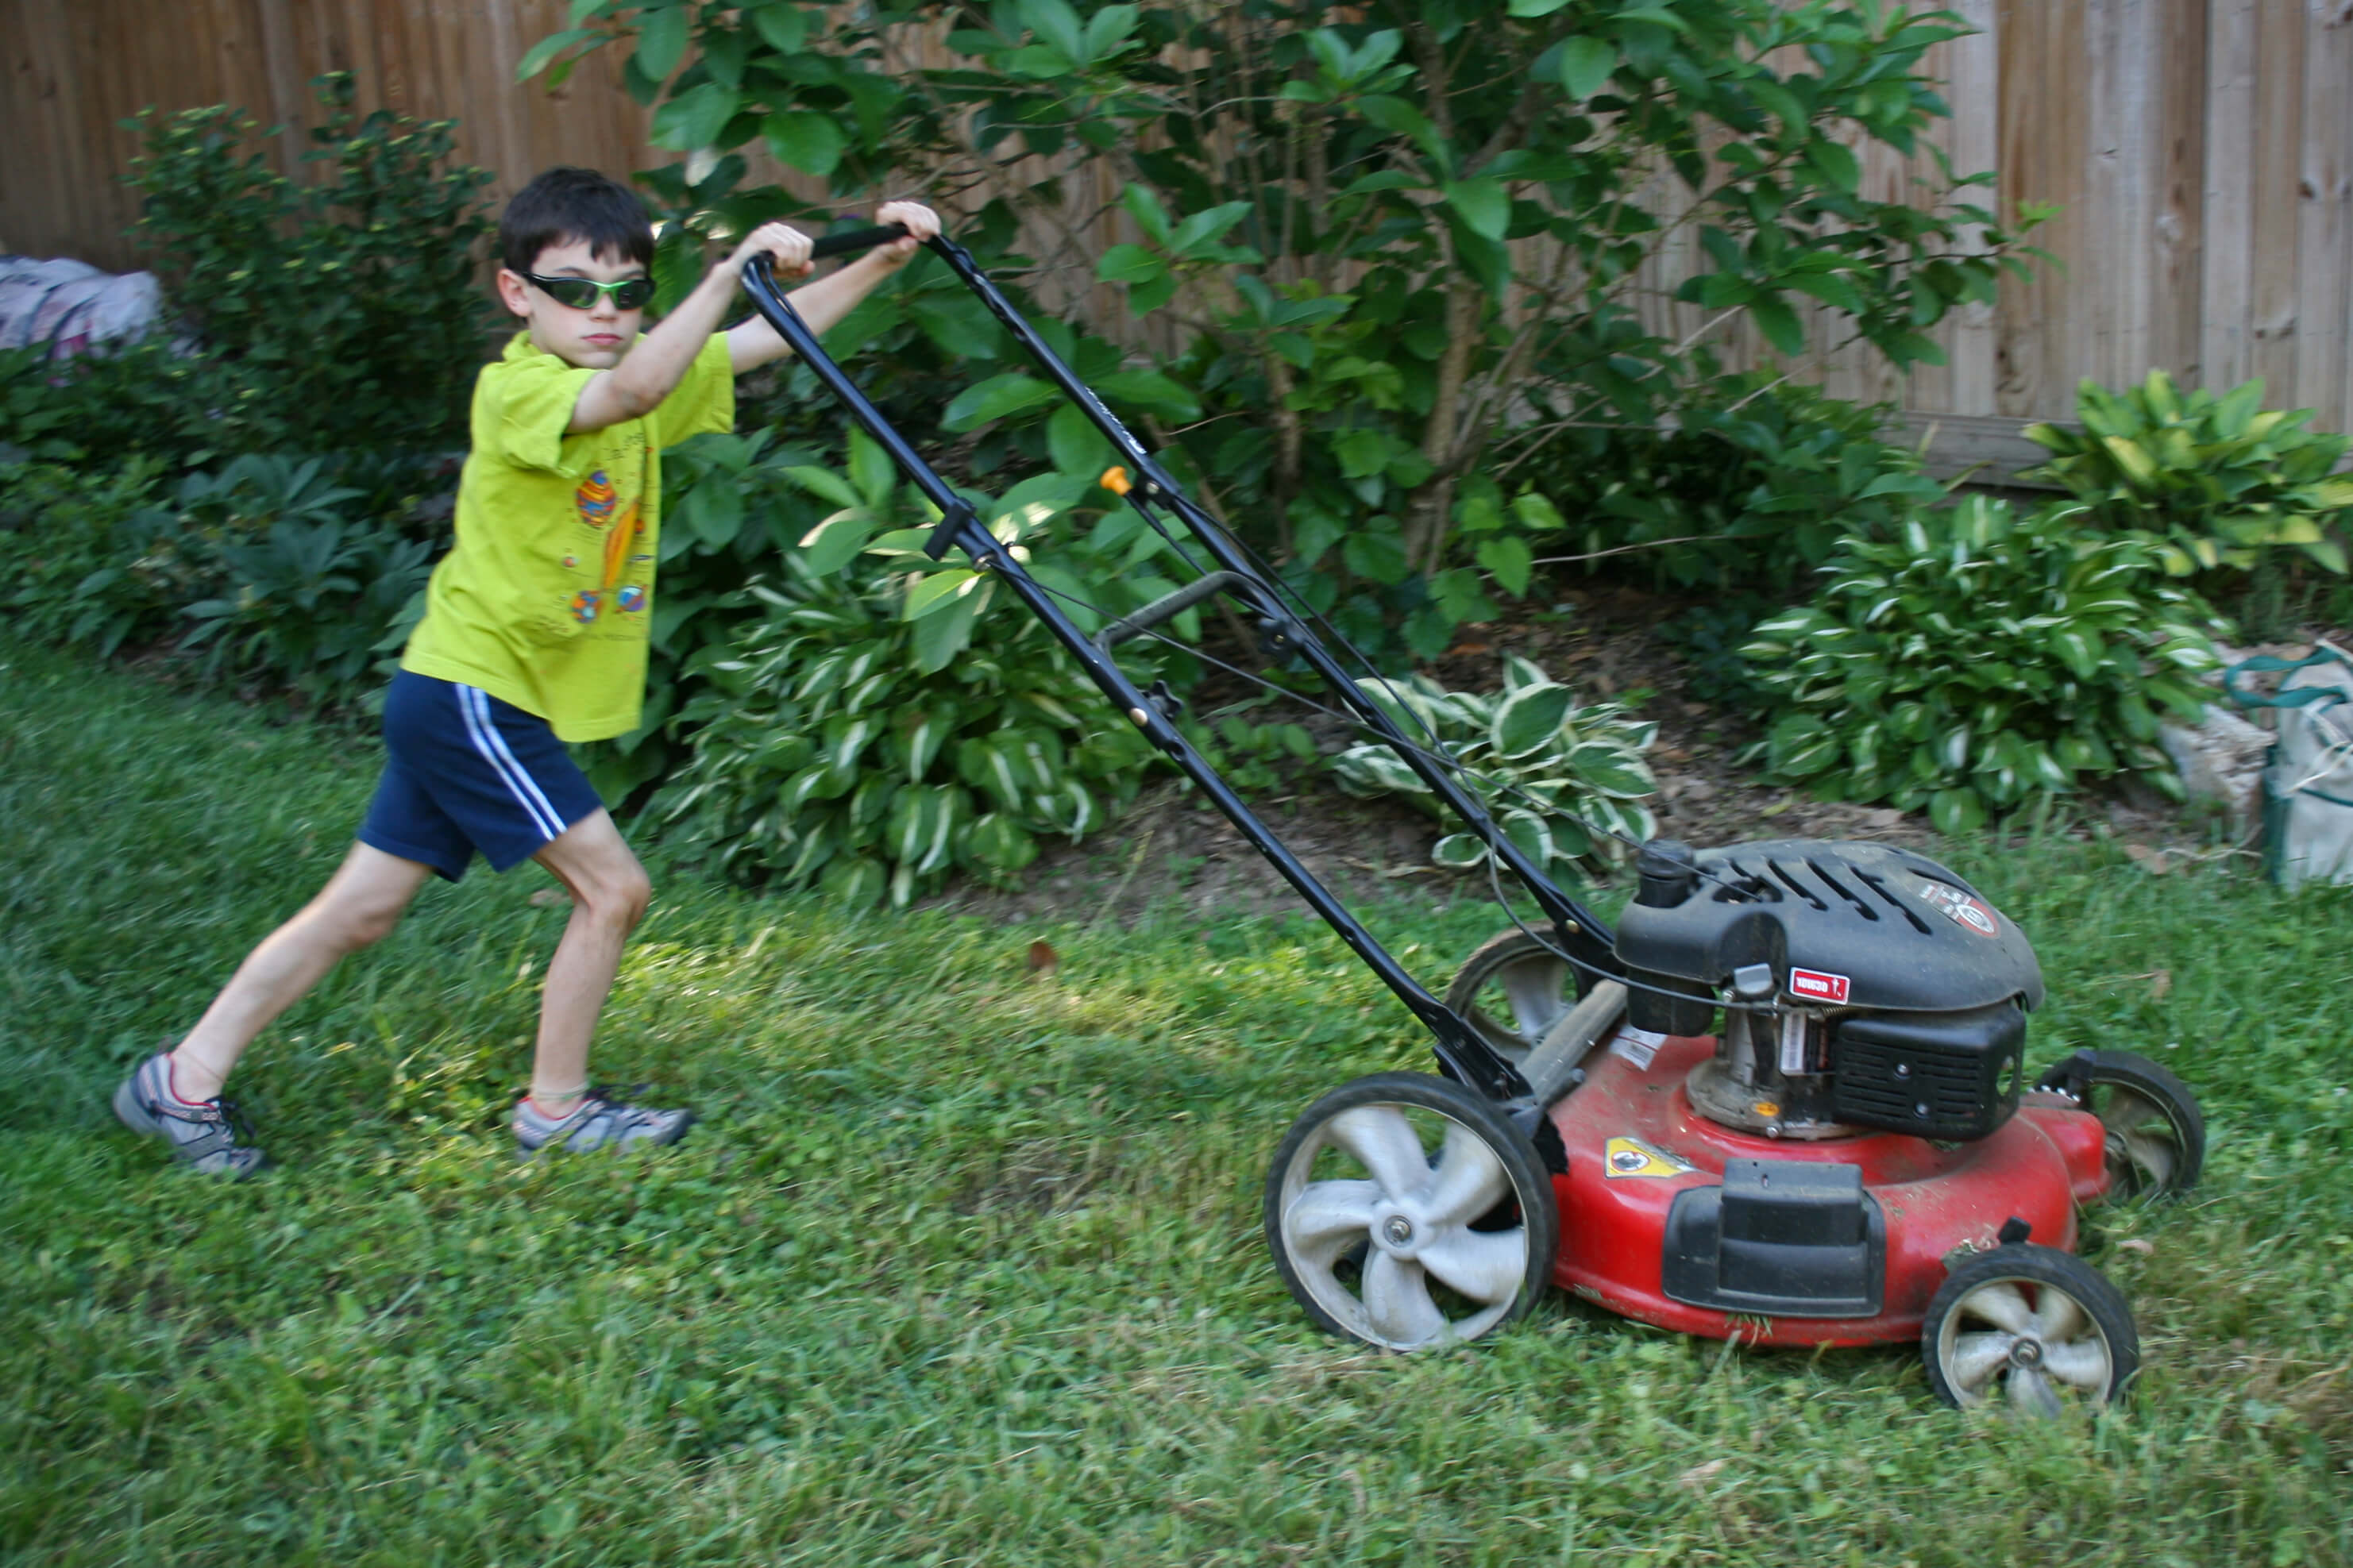 Child moving the lawn